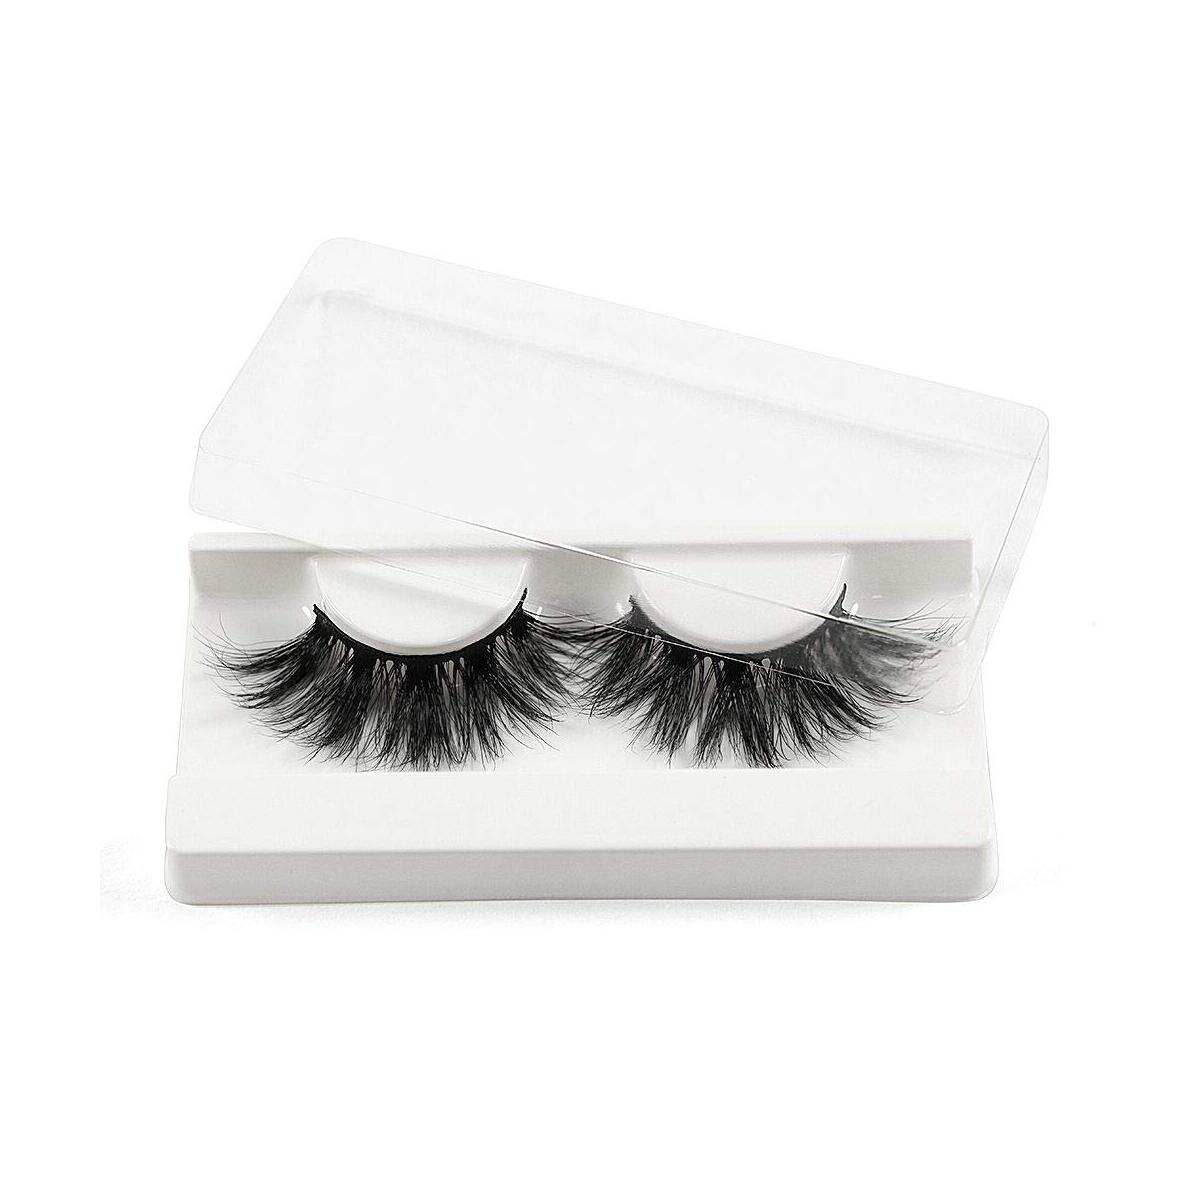 3 pair Mink Eyelashes 3D Mink Hair False Eyelashes Natural Thick Long Eye Lashes Fluffy Makeup Beauty Extension